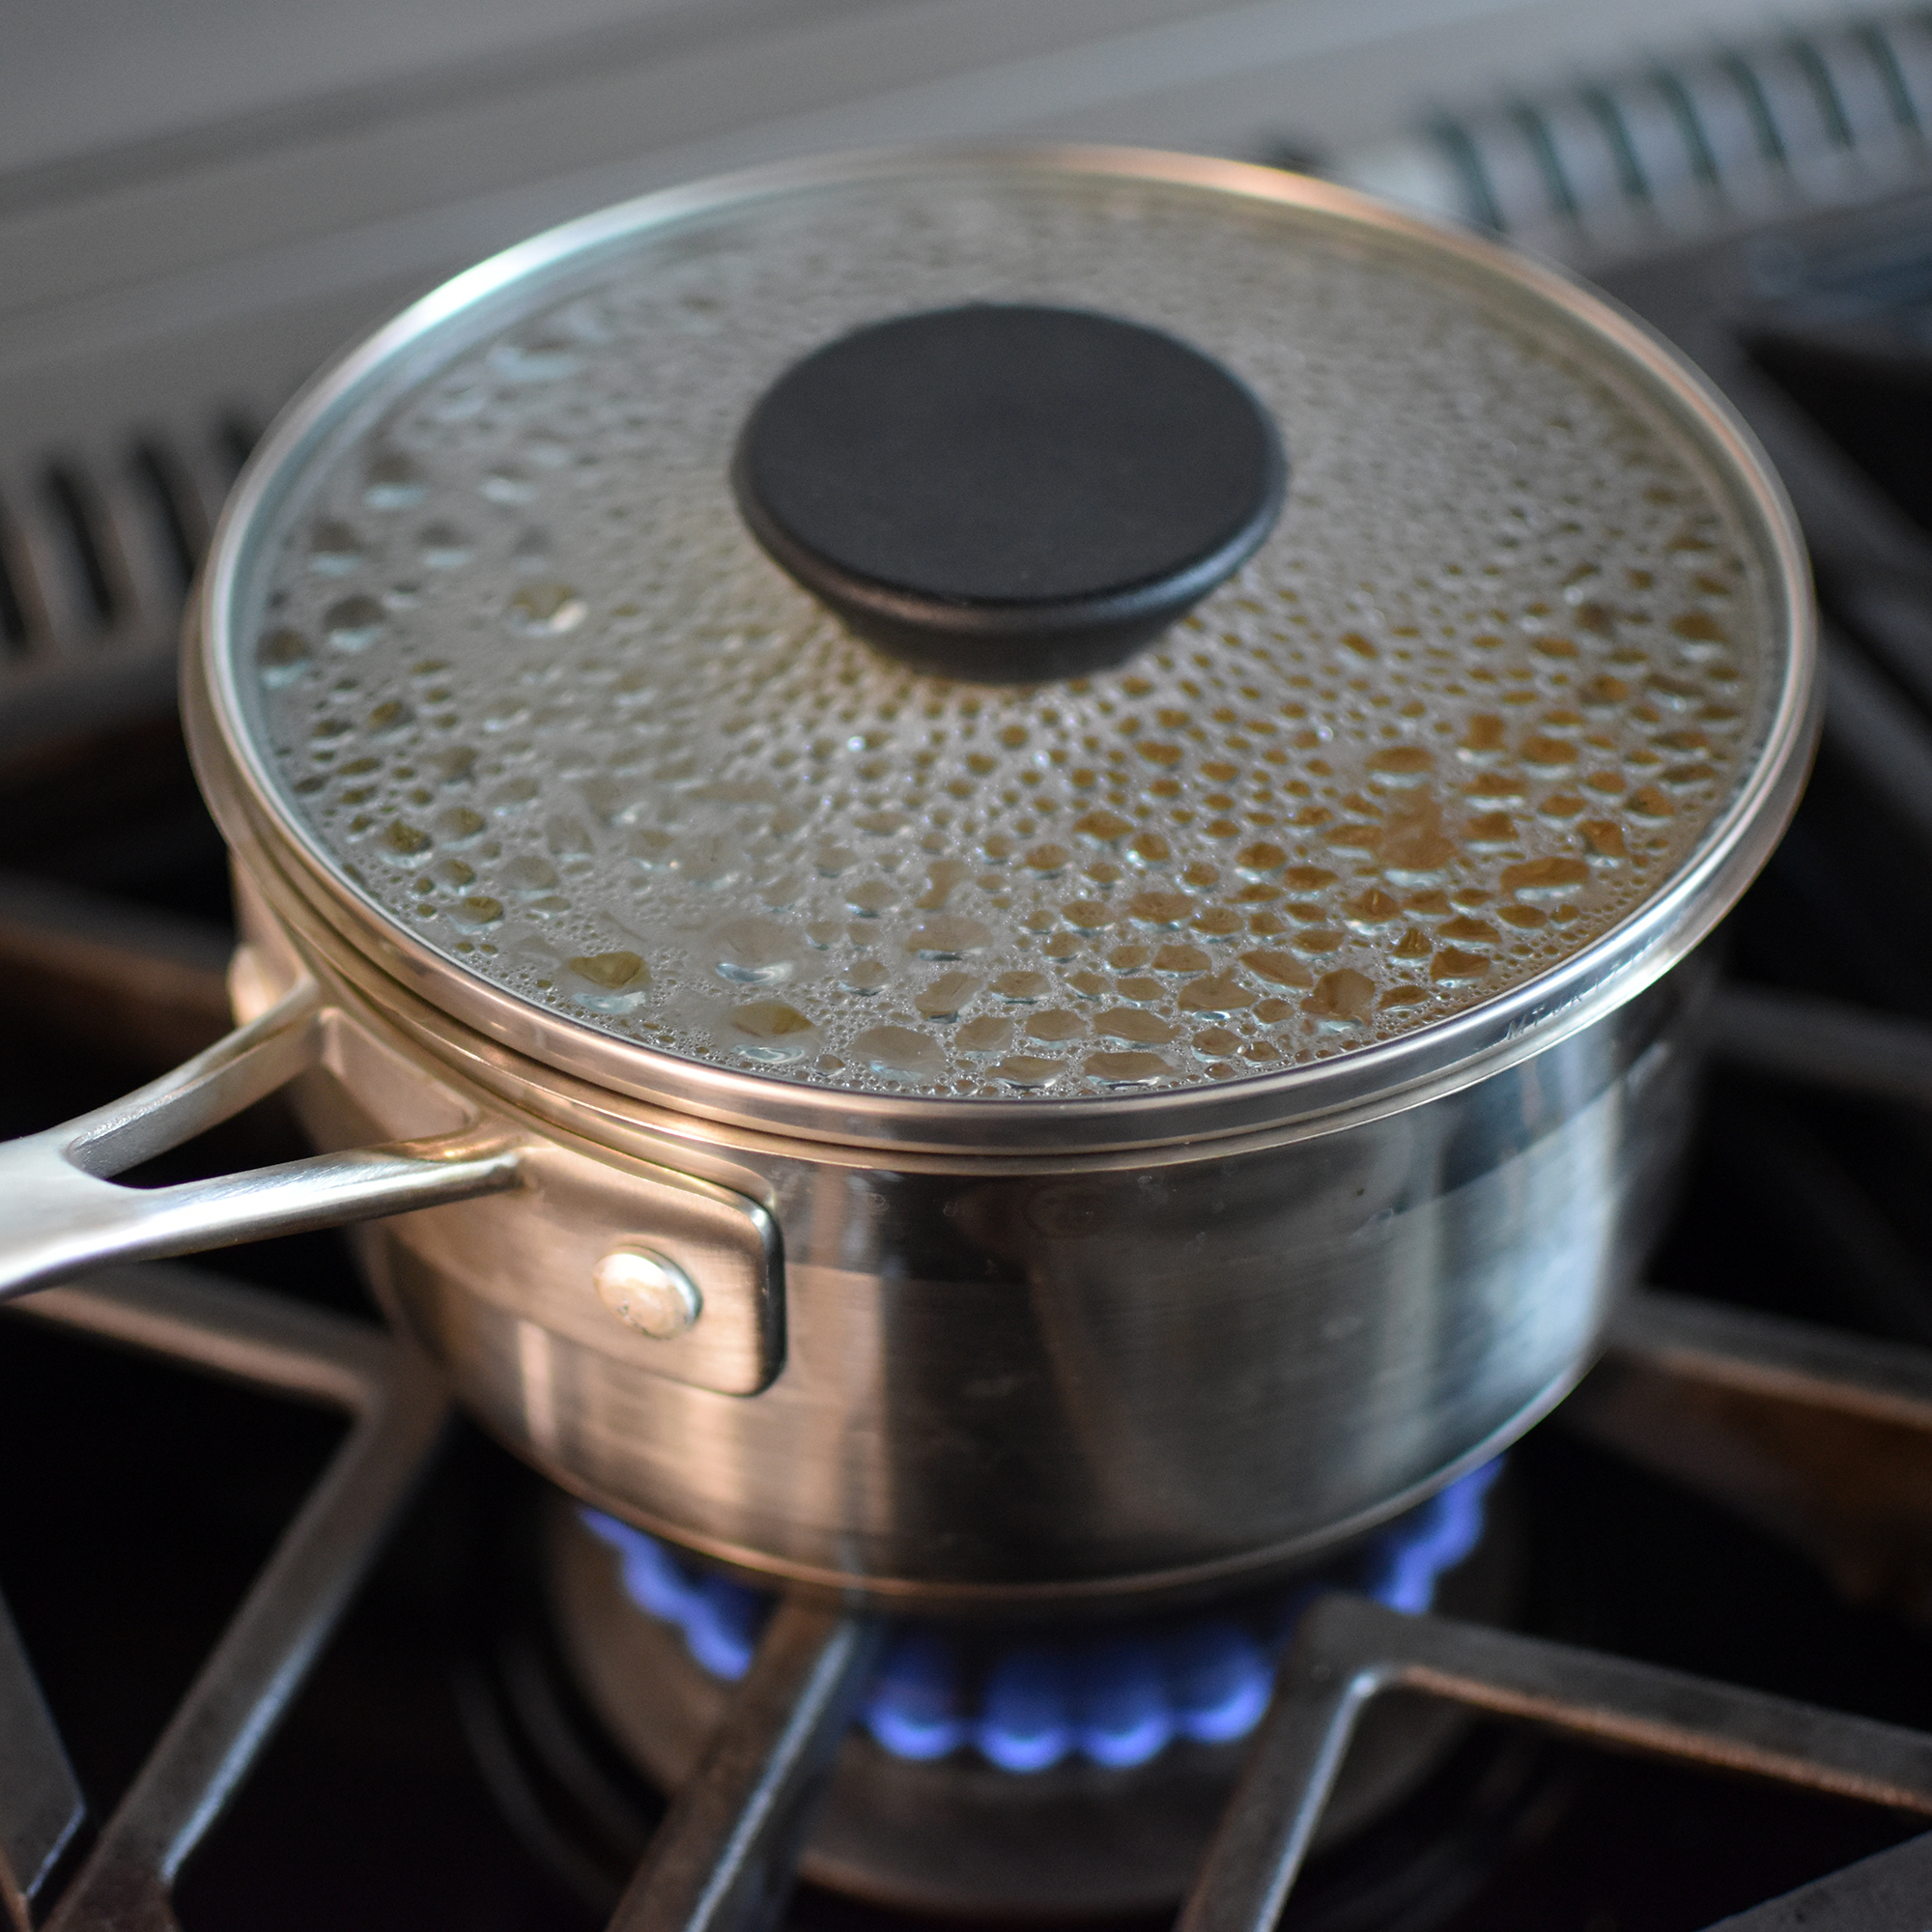 quinoa cooking on stove in saucepan